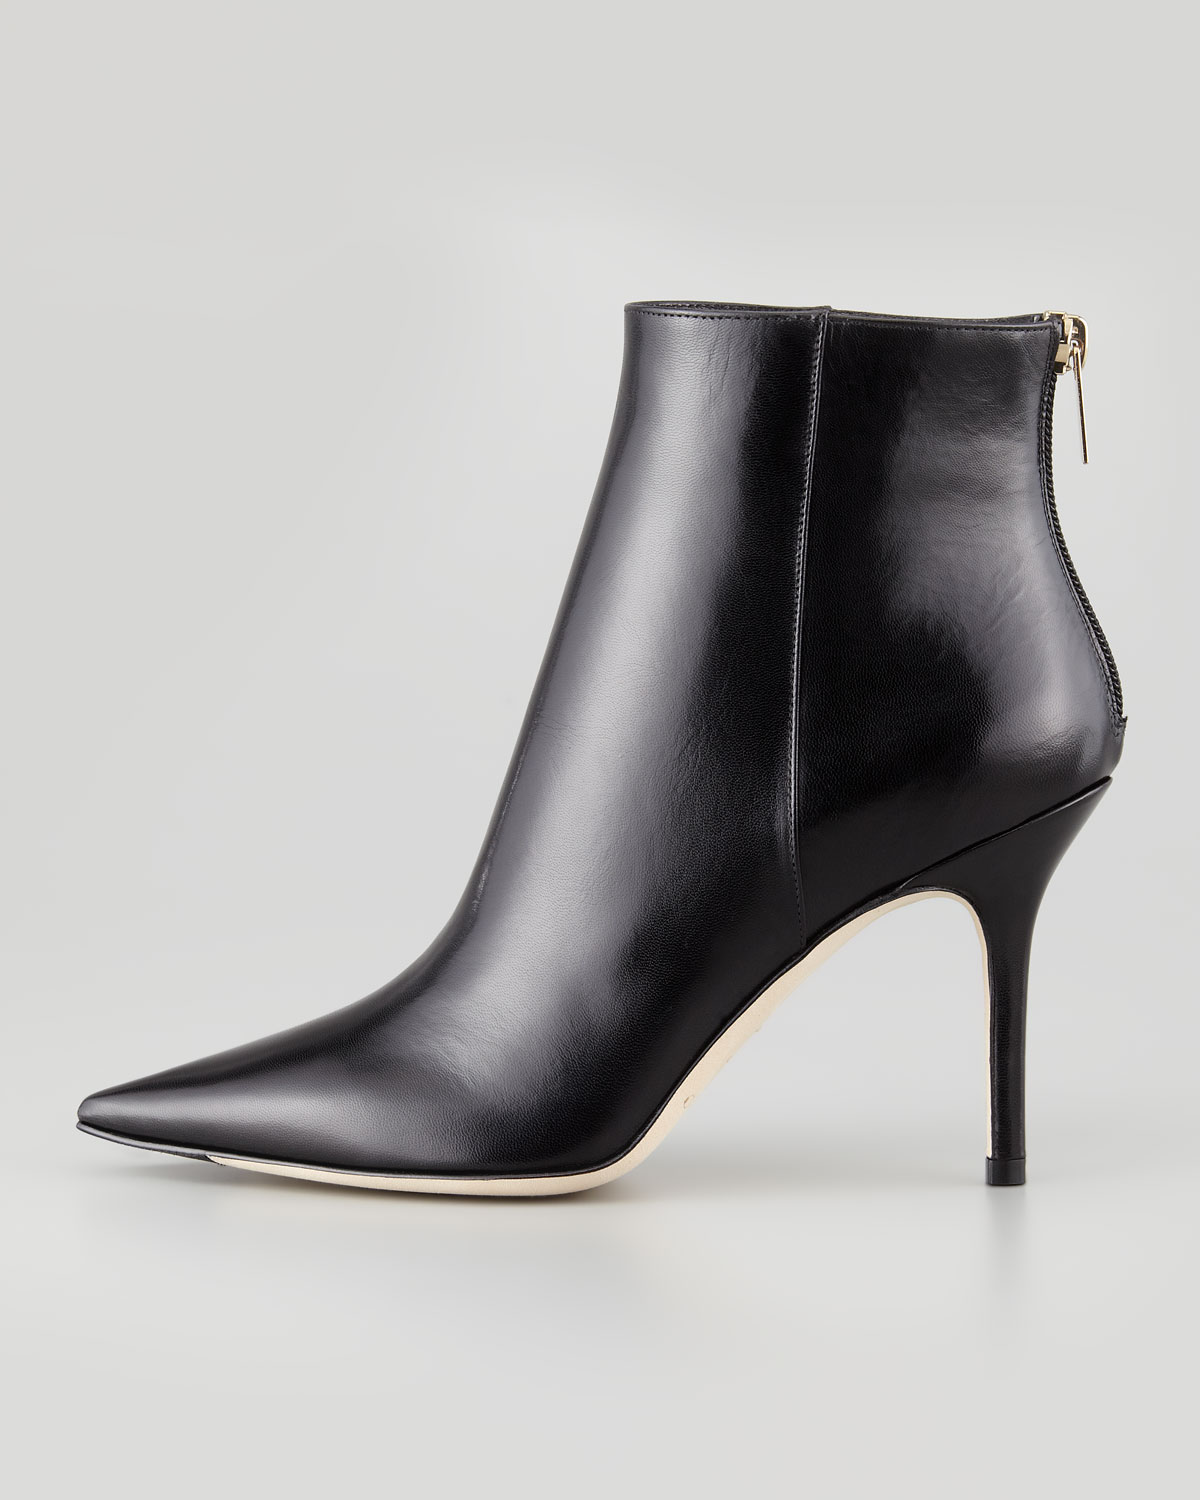 dbbb3ad30f5 ... promo code for lyst jimmy choo amore pointed toe ankle boot in black  c4358 995ab